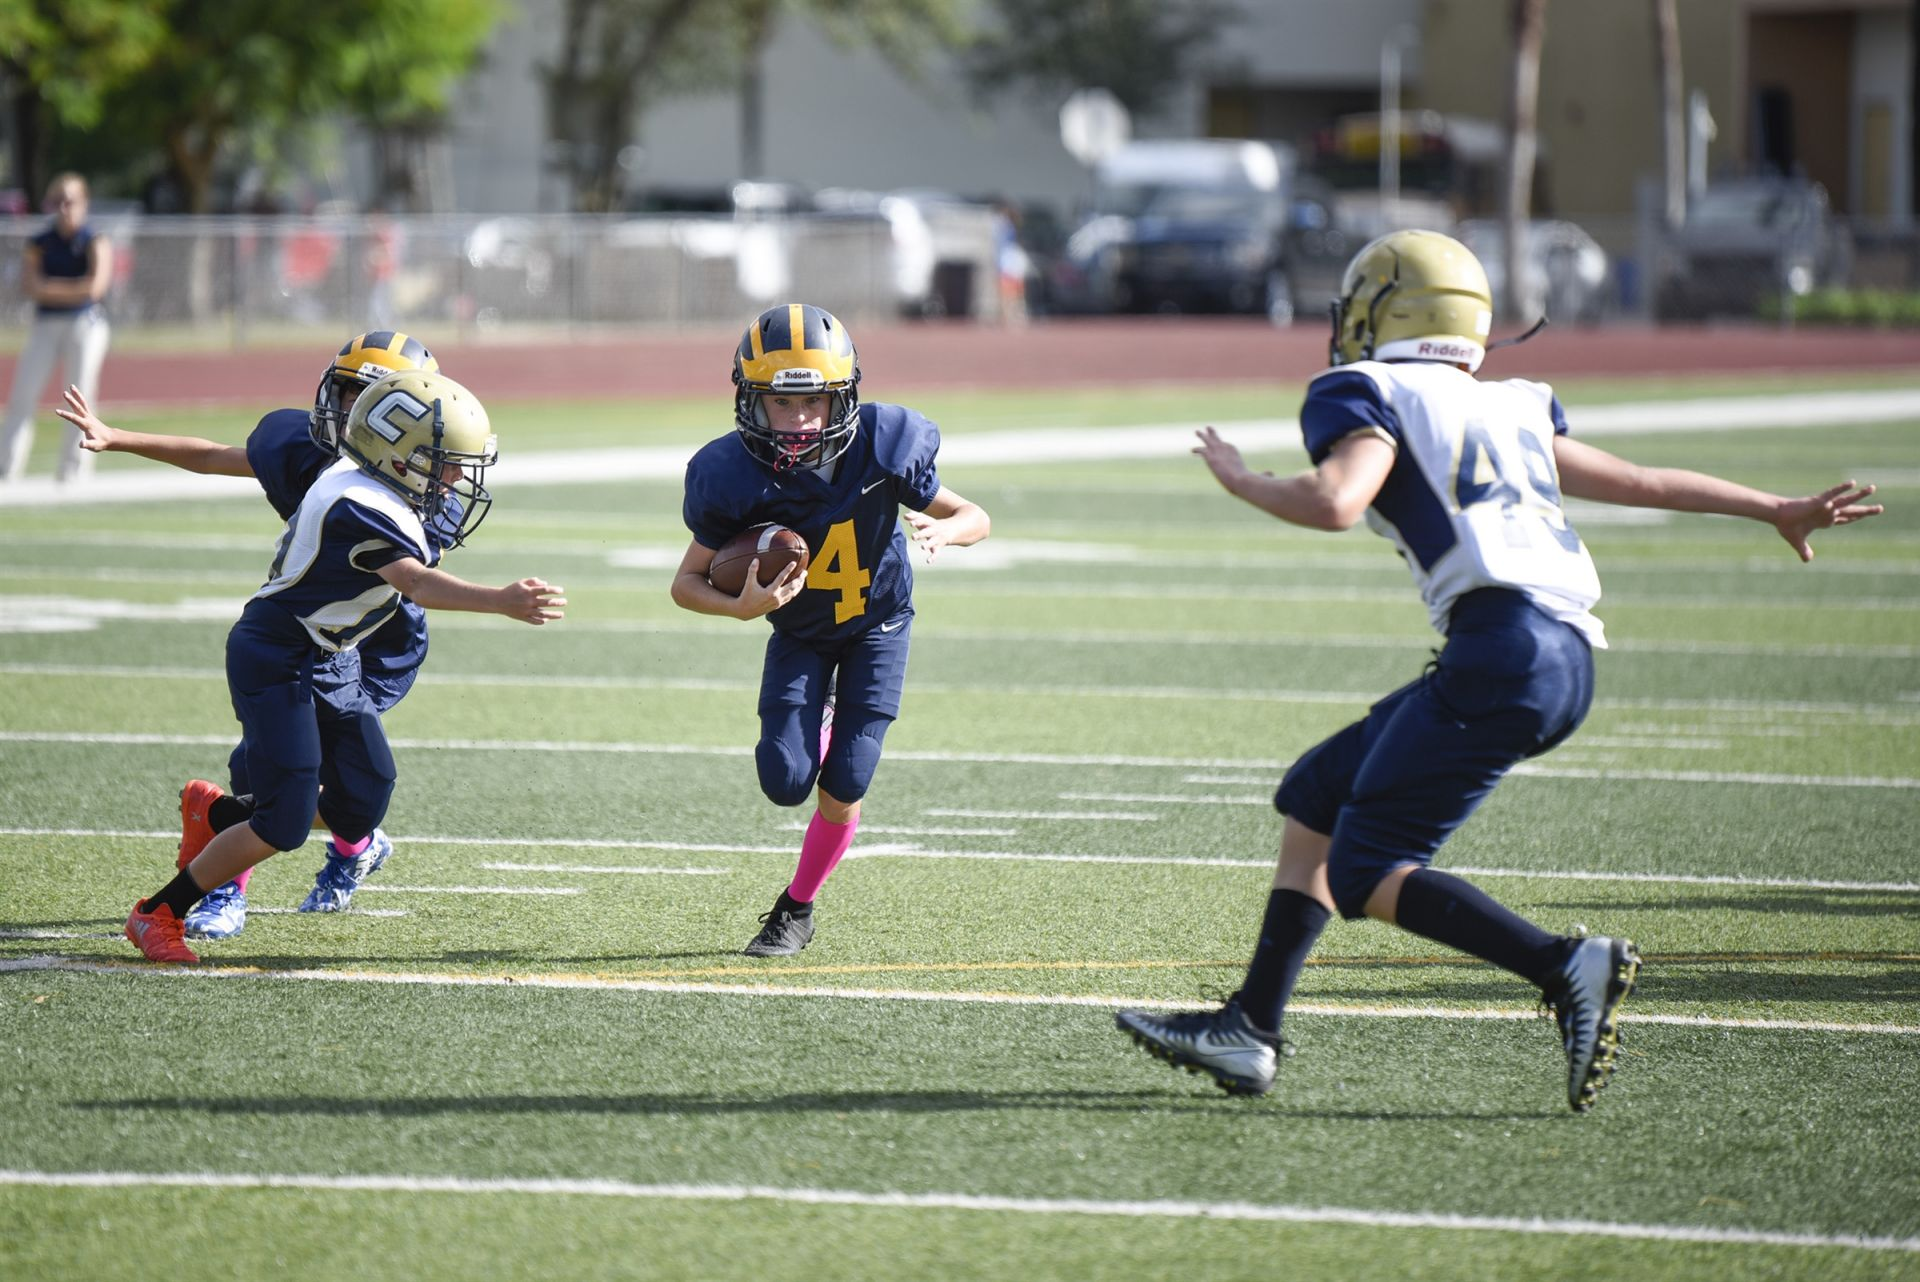 Sixth grade football game against Christian Calvary on October 16, 2018.